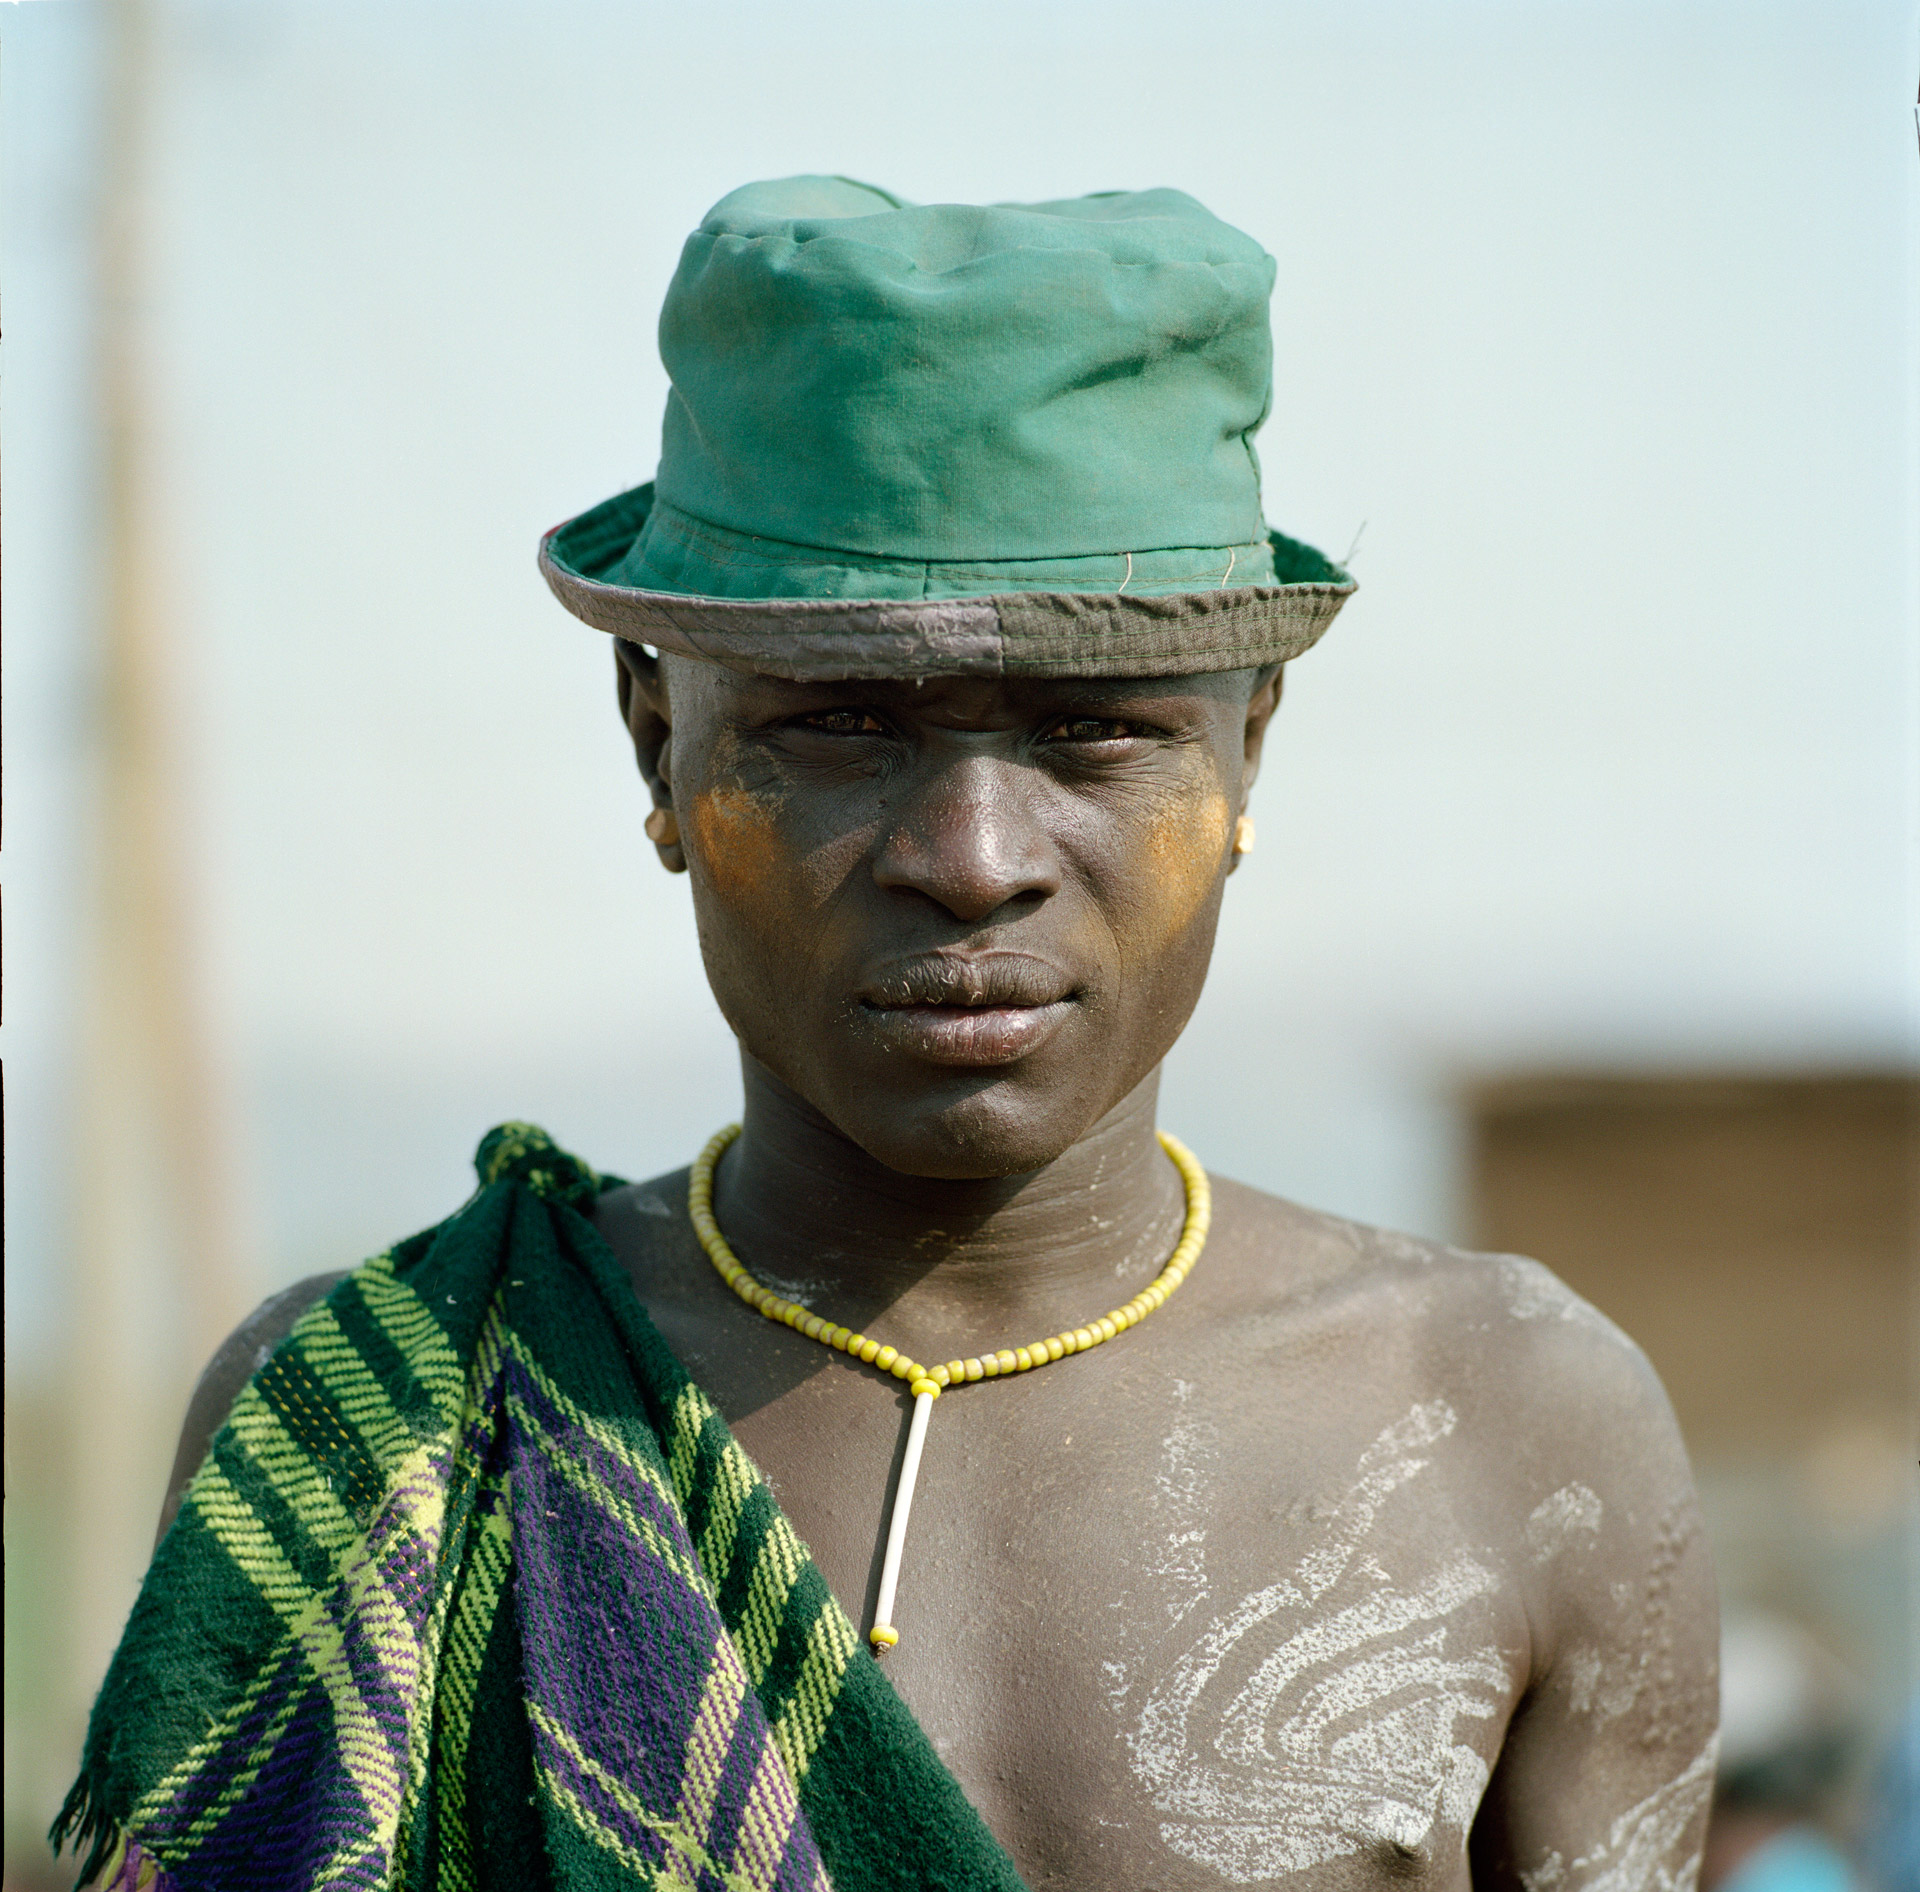 A man from the Mursi tribe at the market in Jinka